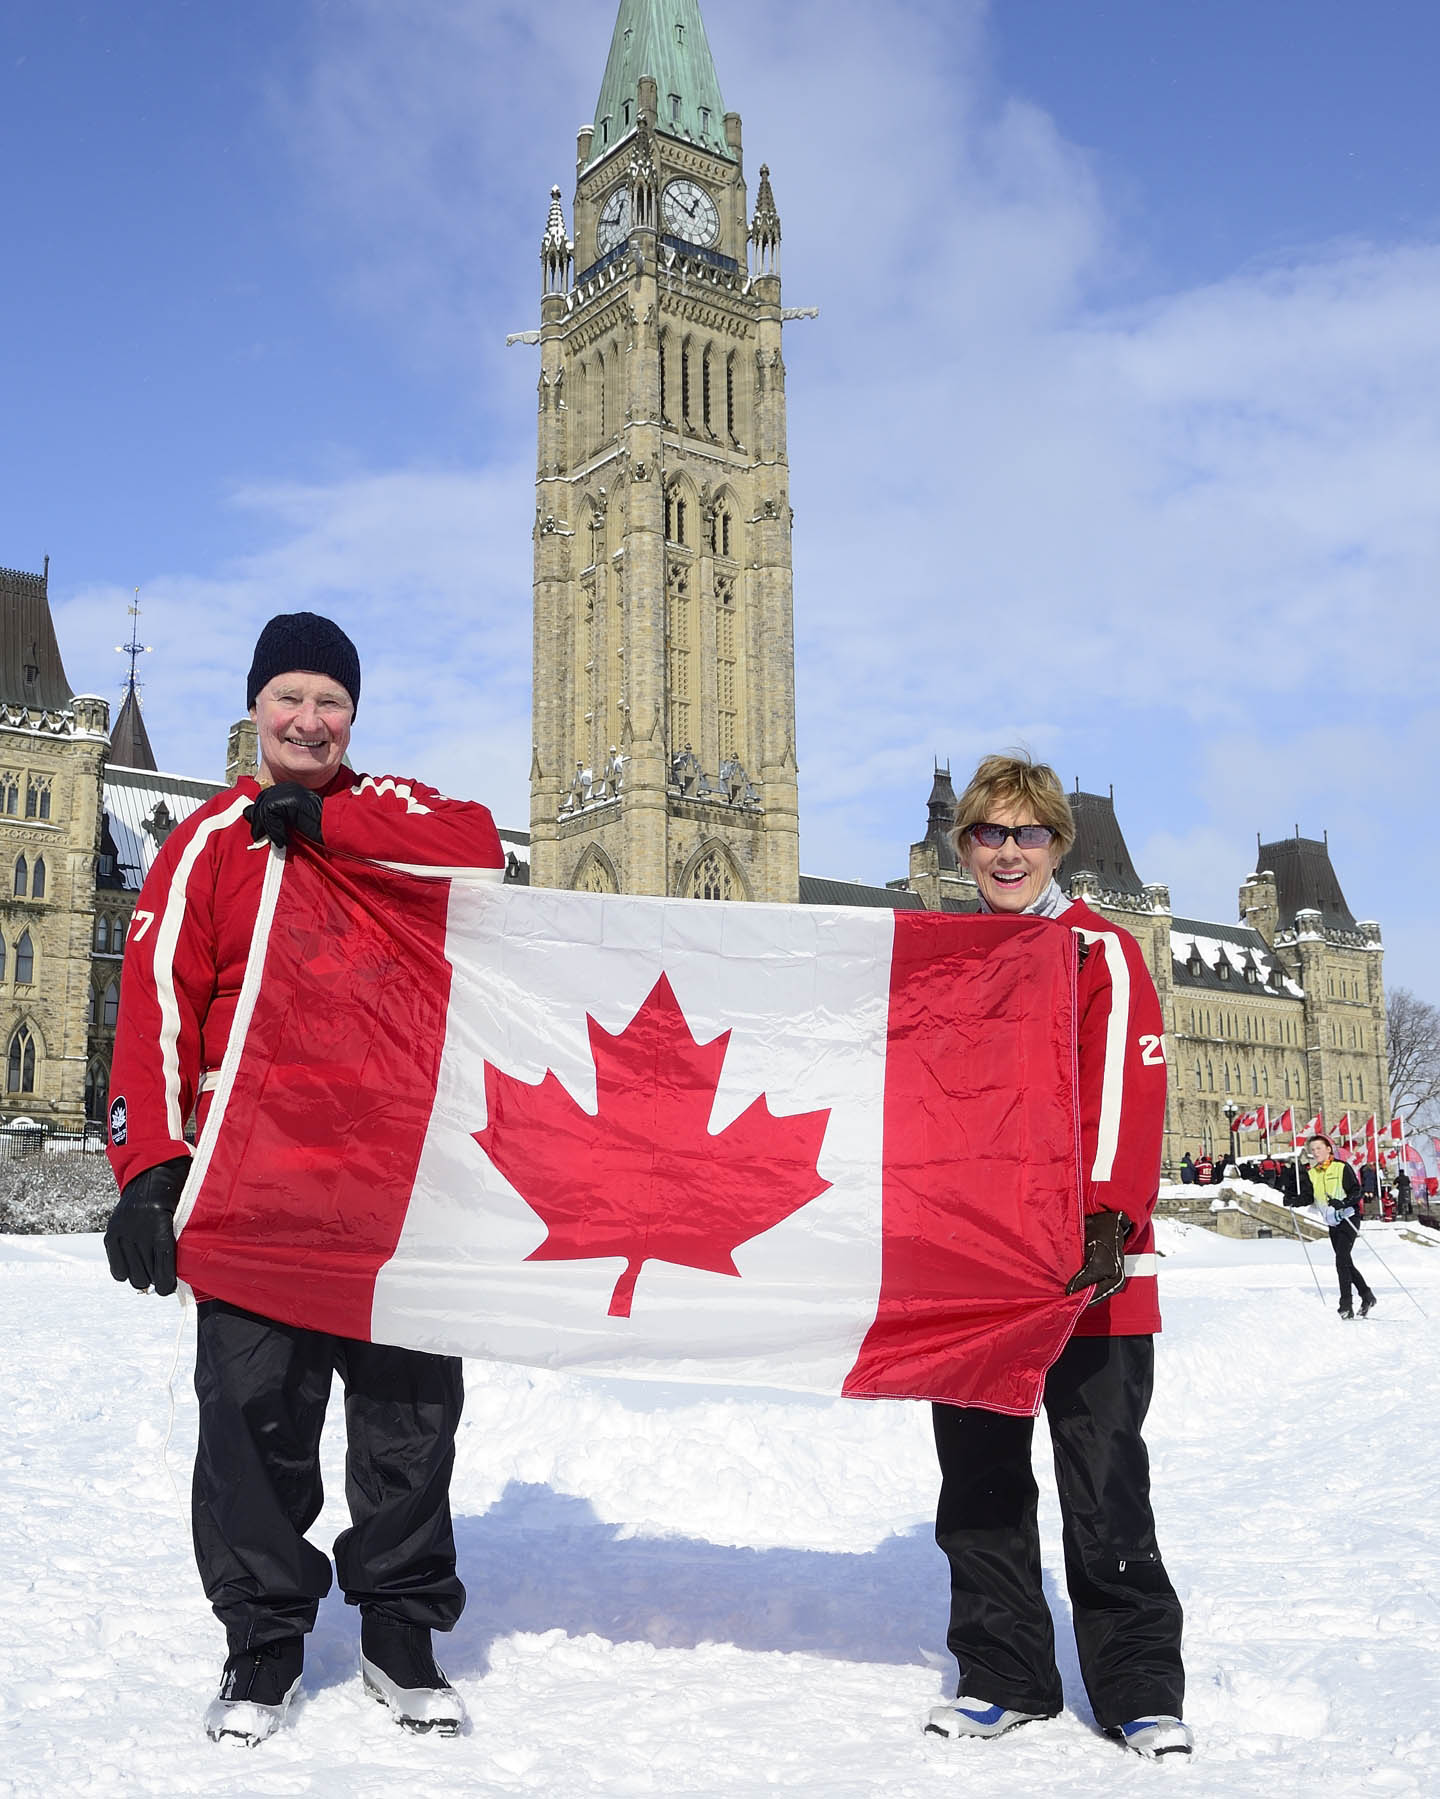 On the occasion of Flag Day, Their Excellencies took a photo with the Canadian flag in front of the Peace Tower.